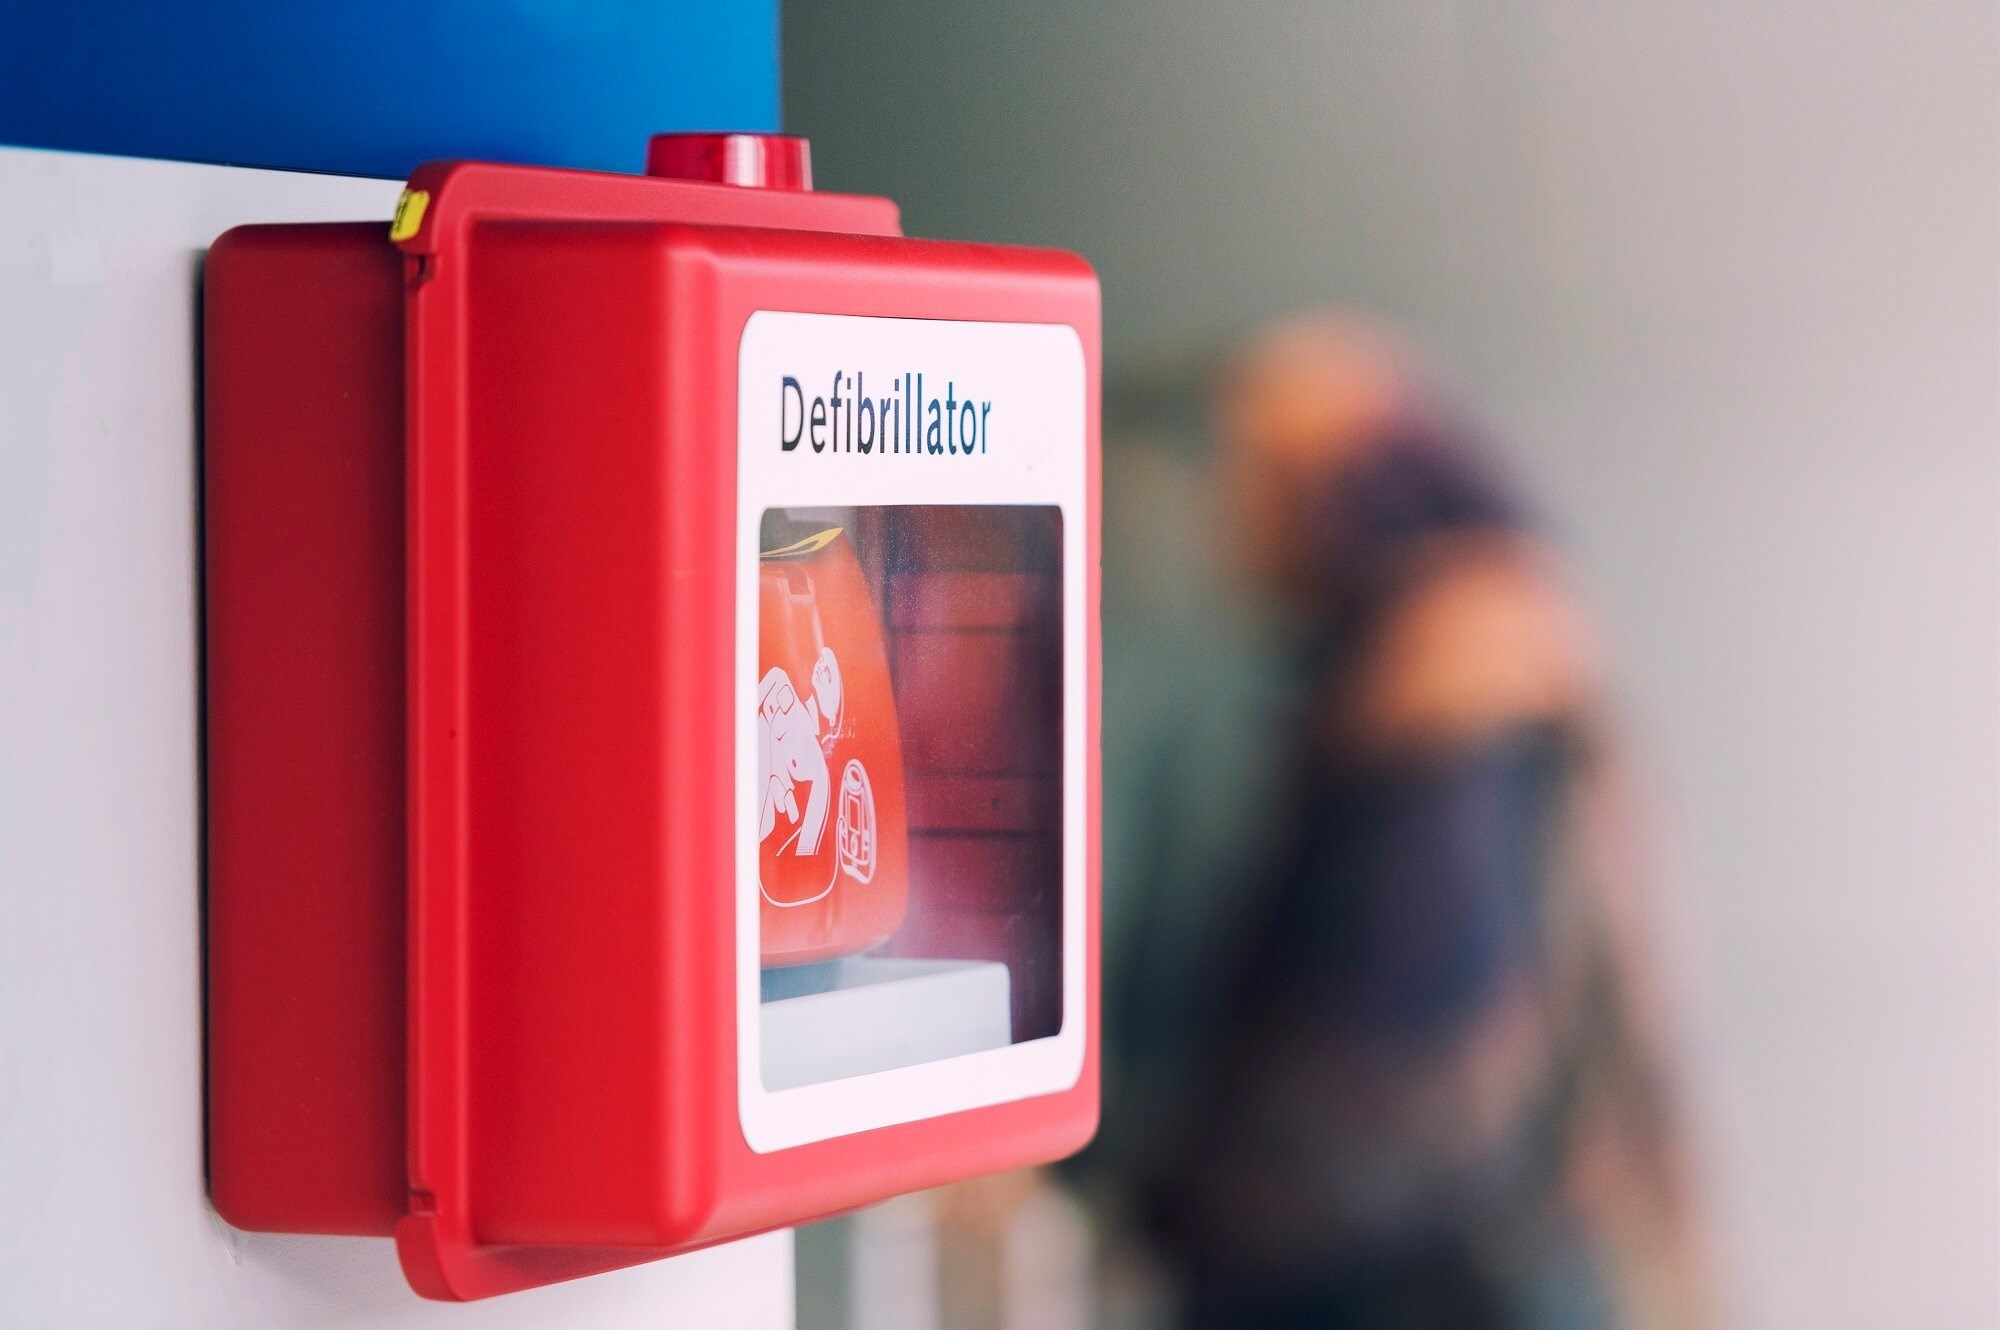 Public Automated Defibrillators Associated With Improved OHCA Outcomes